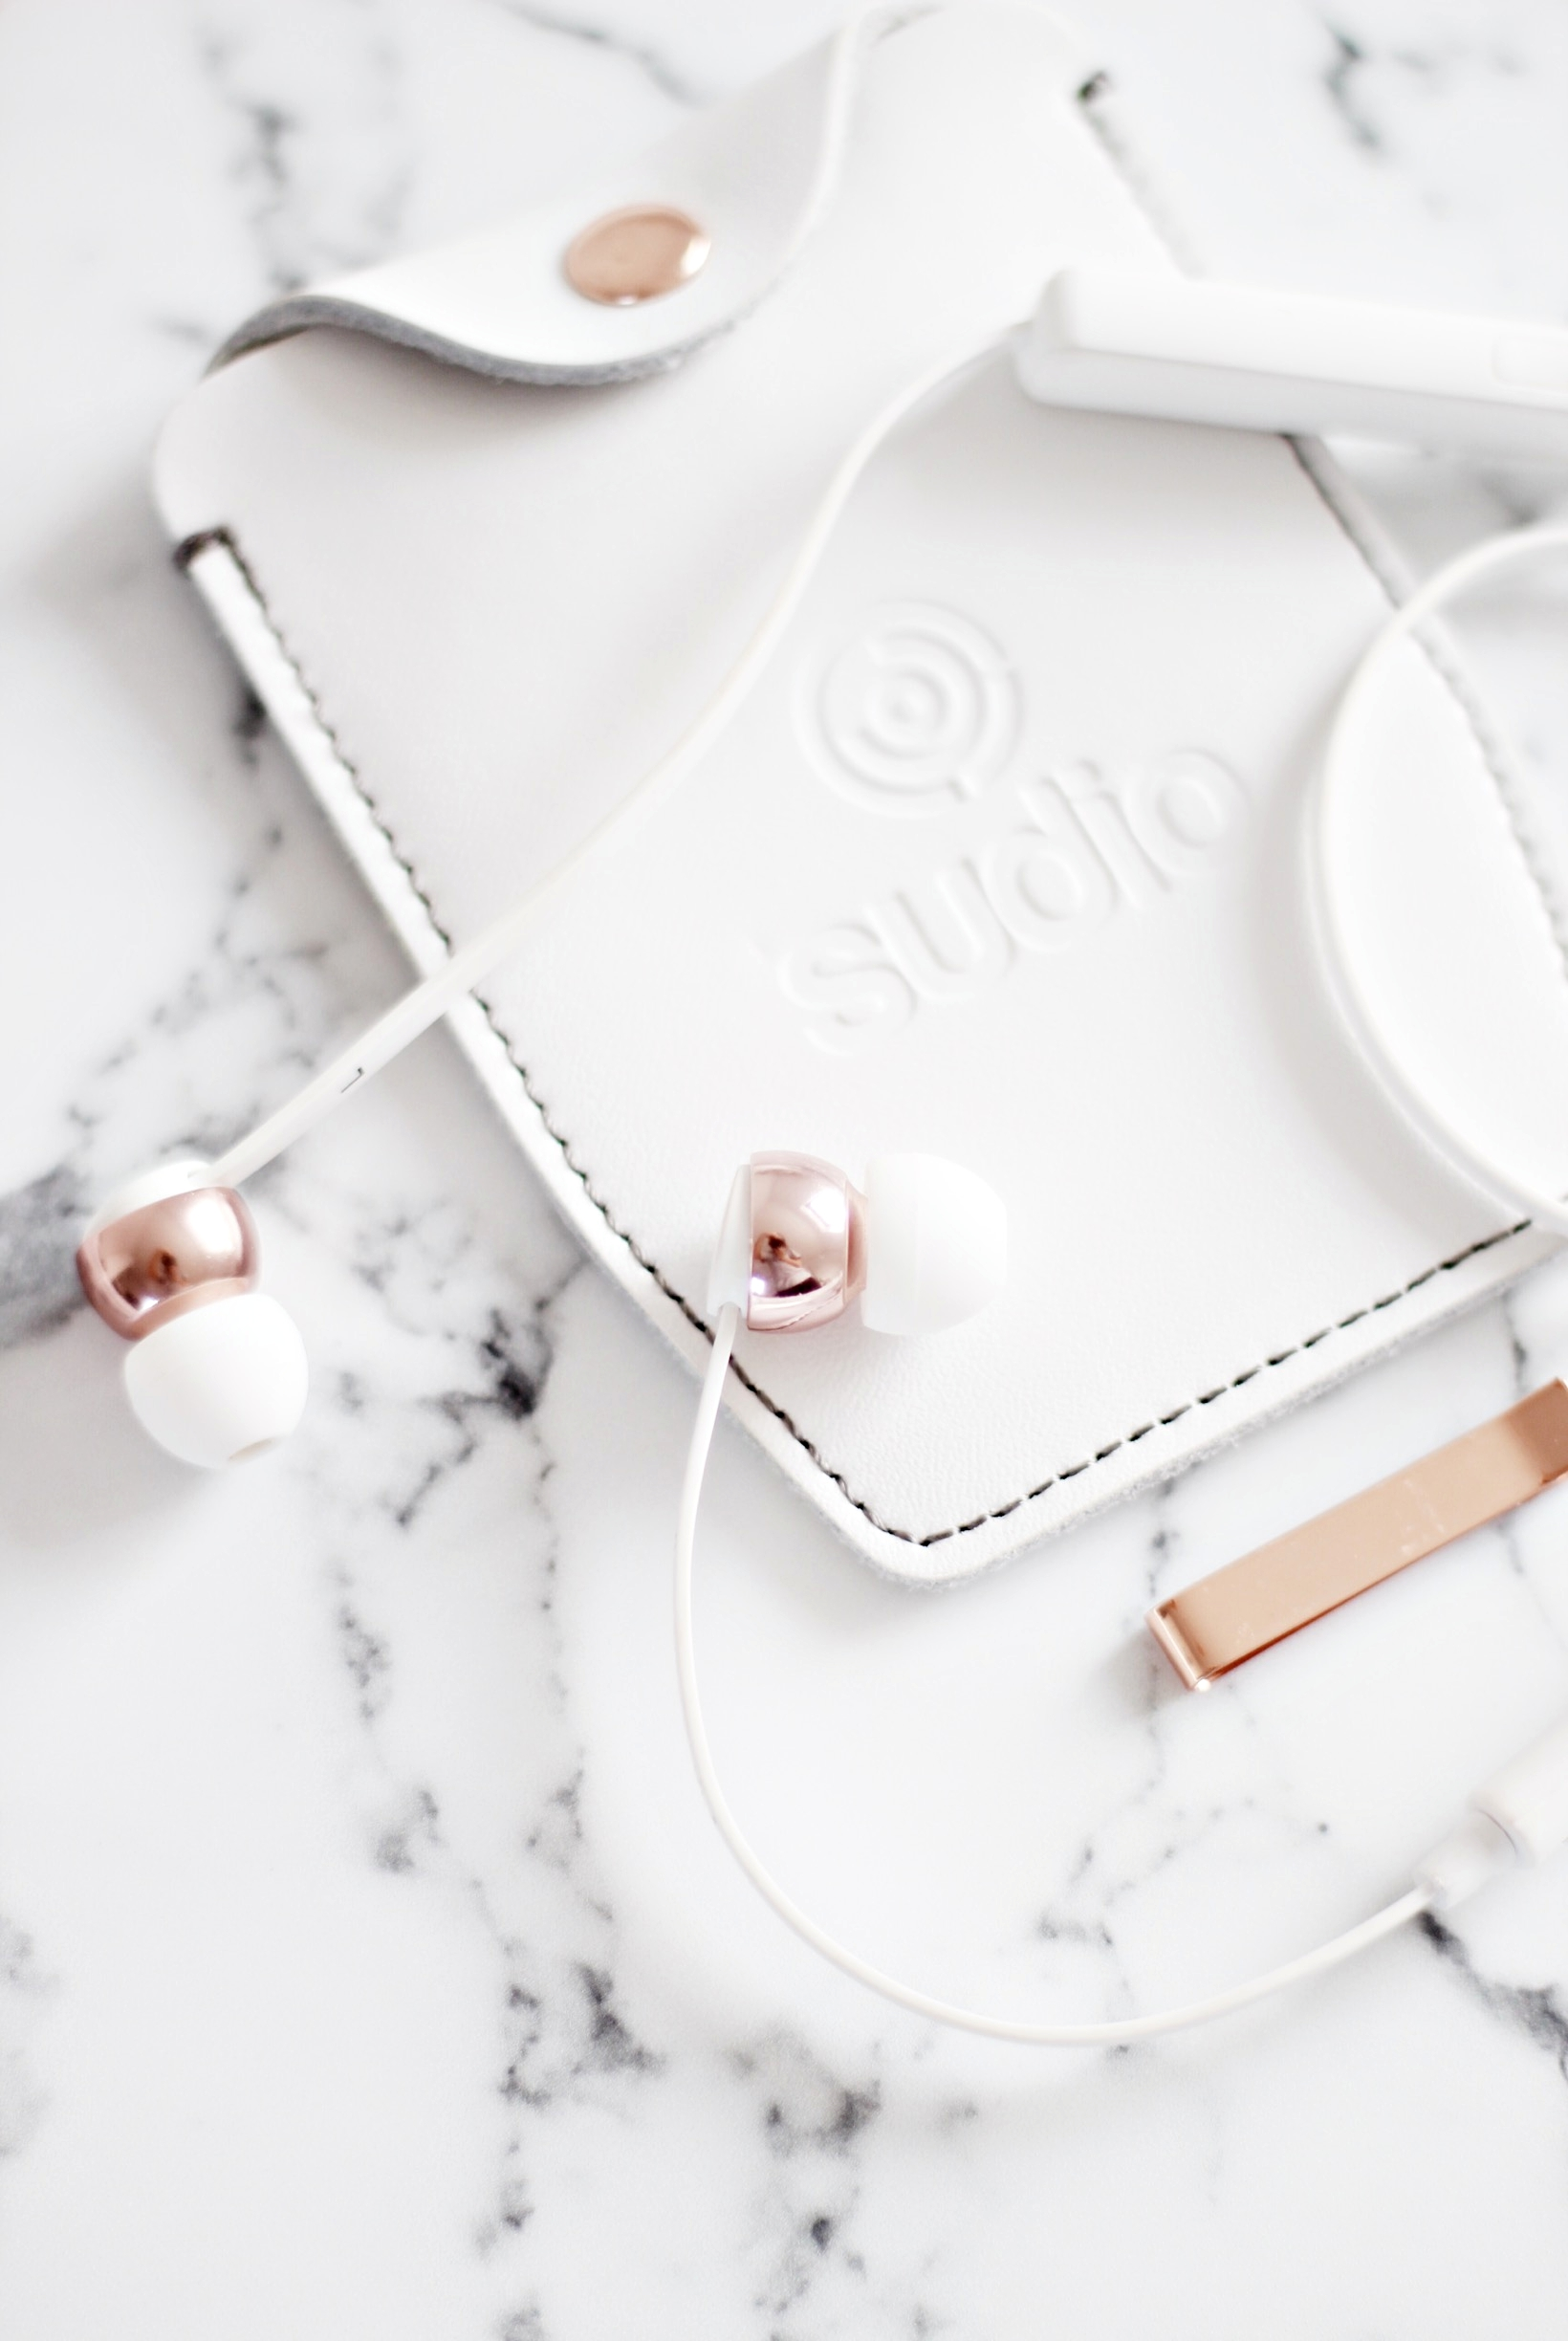 Sudio Sweden: Vasa Blå Earphones